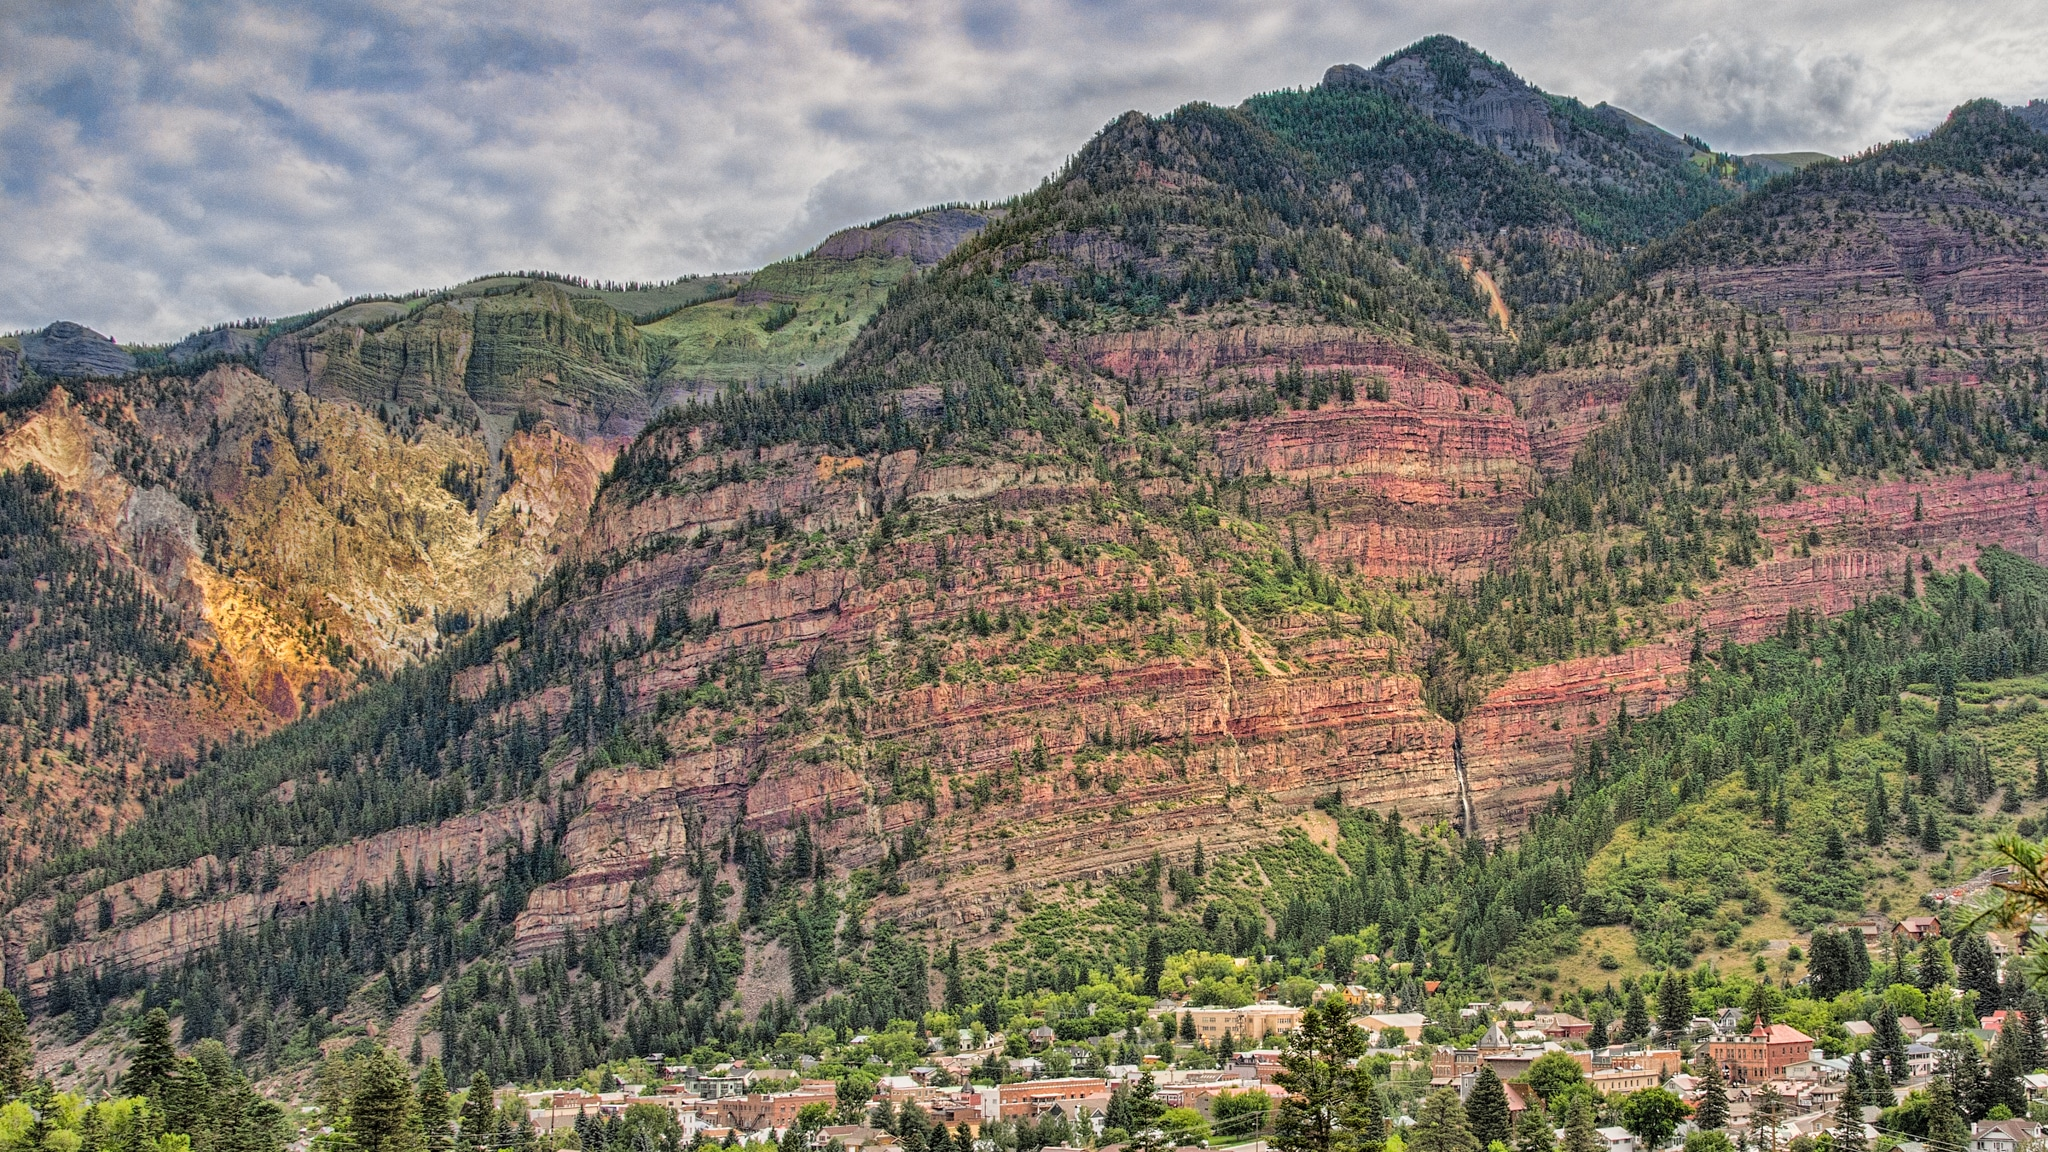 Cascade Falls is visible in the lower-right portion of the frame, above the mountain town of Ouray, Colorado.